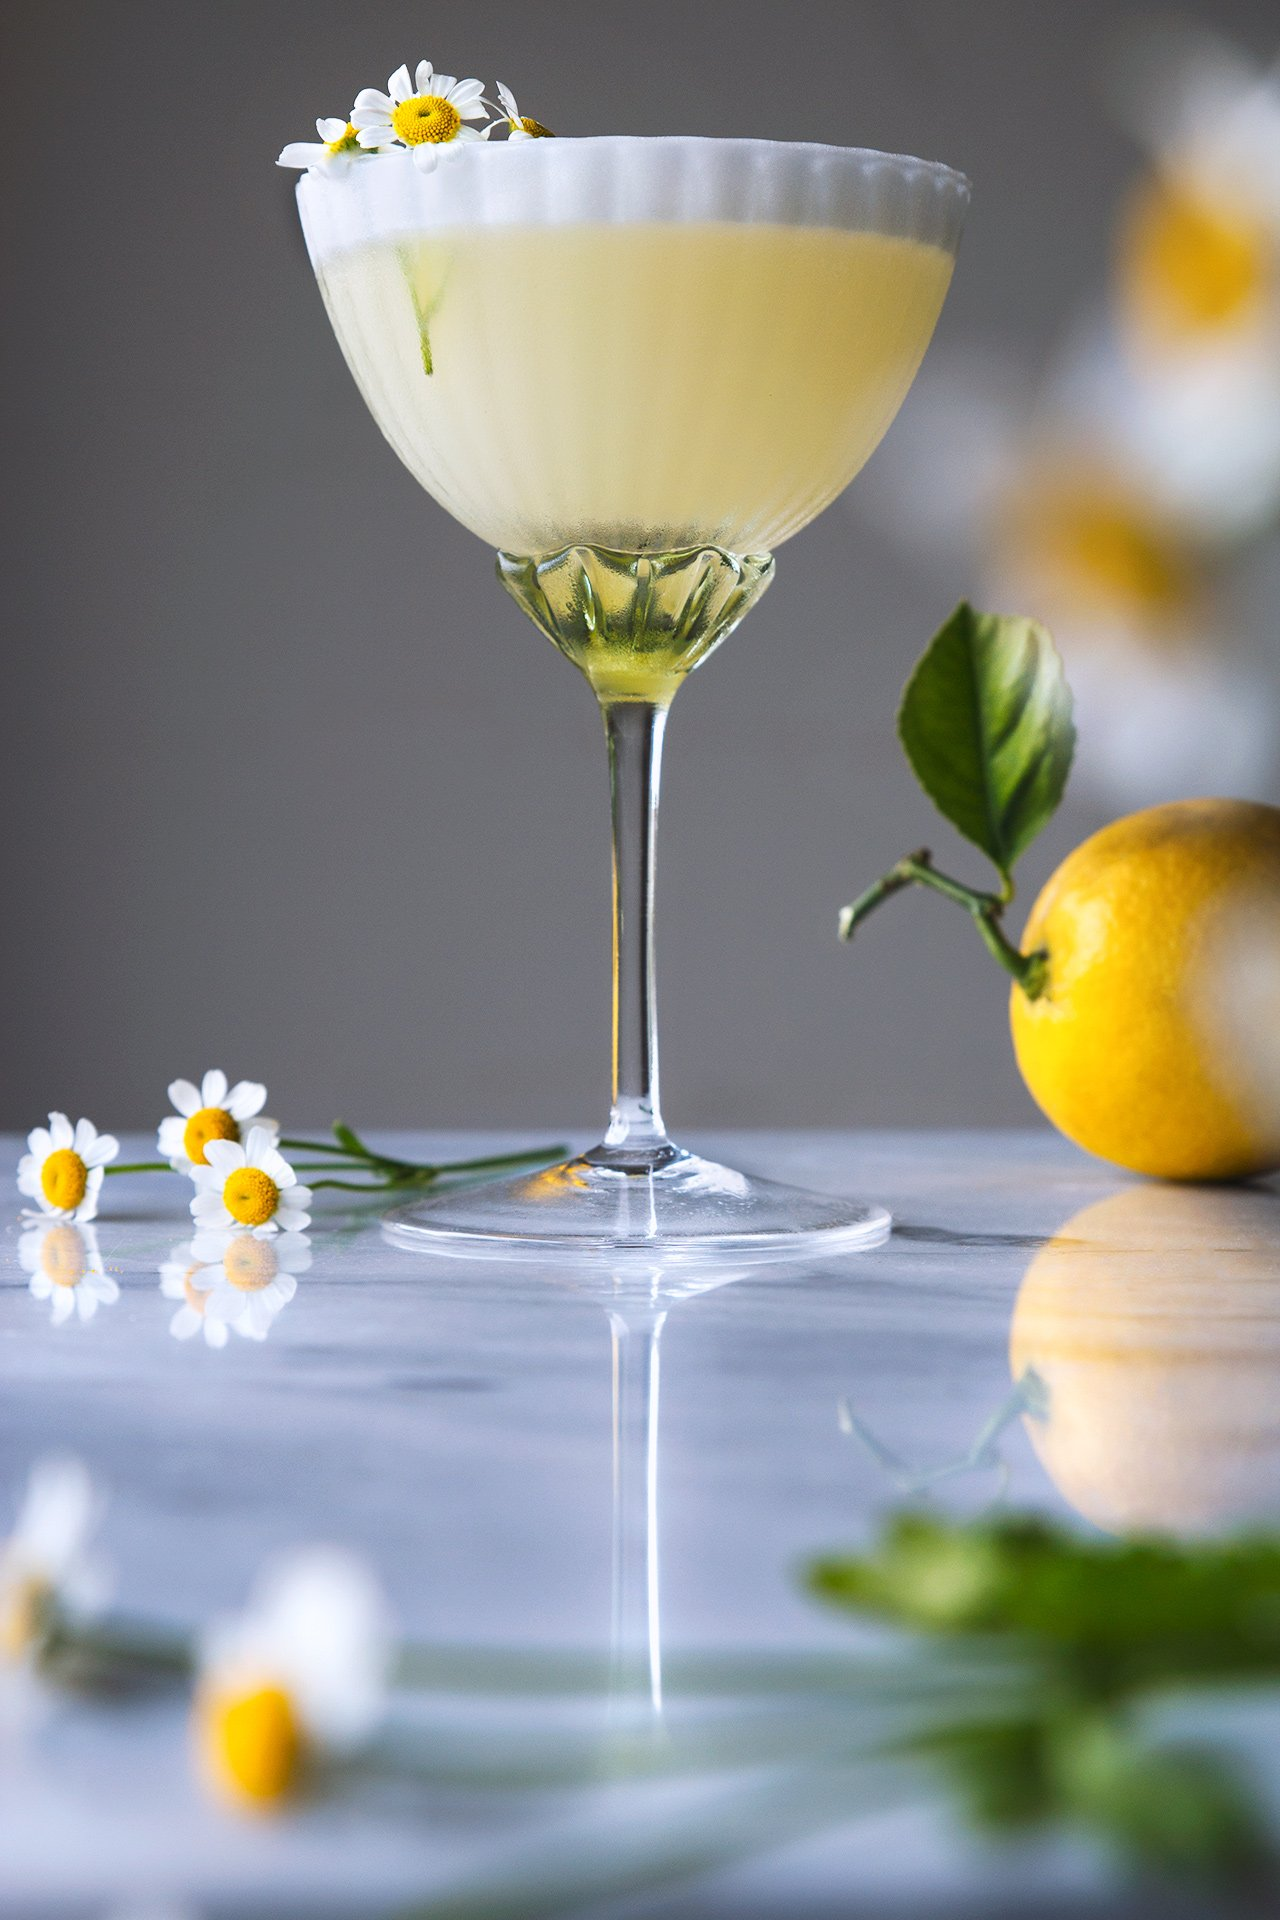 Lemon Chamomile Spring Cocktail | HonestlyYUM (honestlyyum.com)